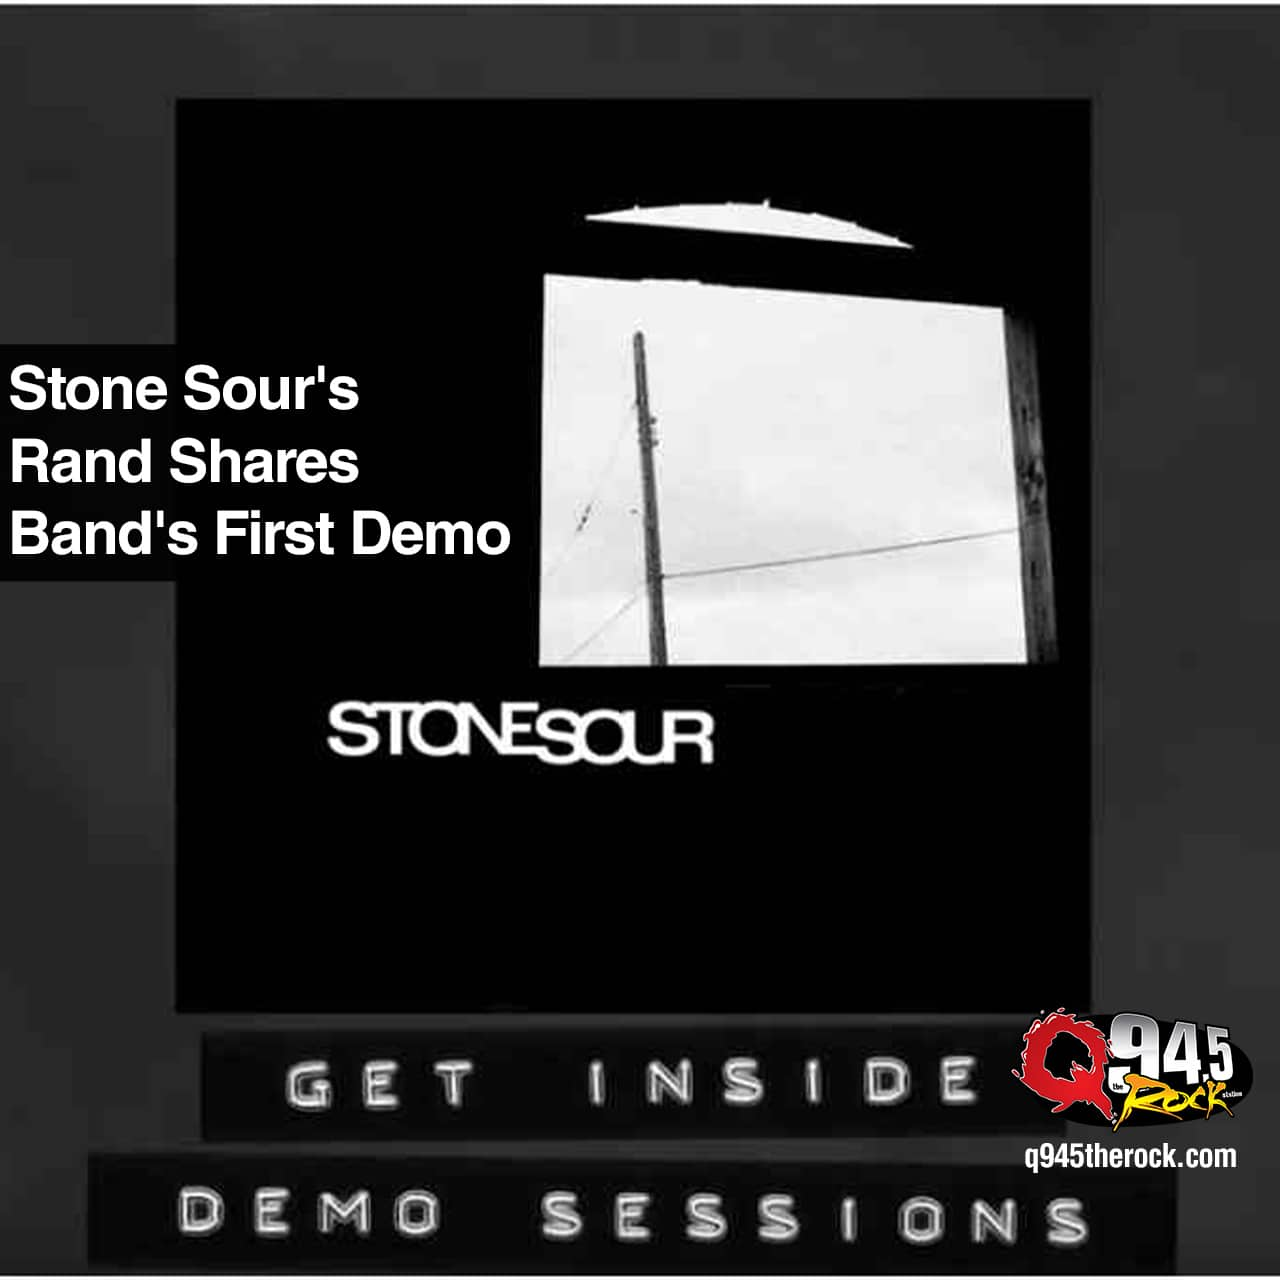 Stone Sour's Rand Shares Band's First Demo